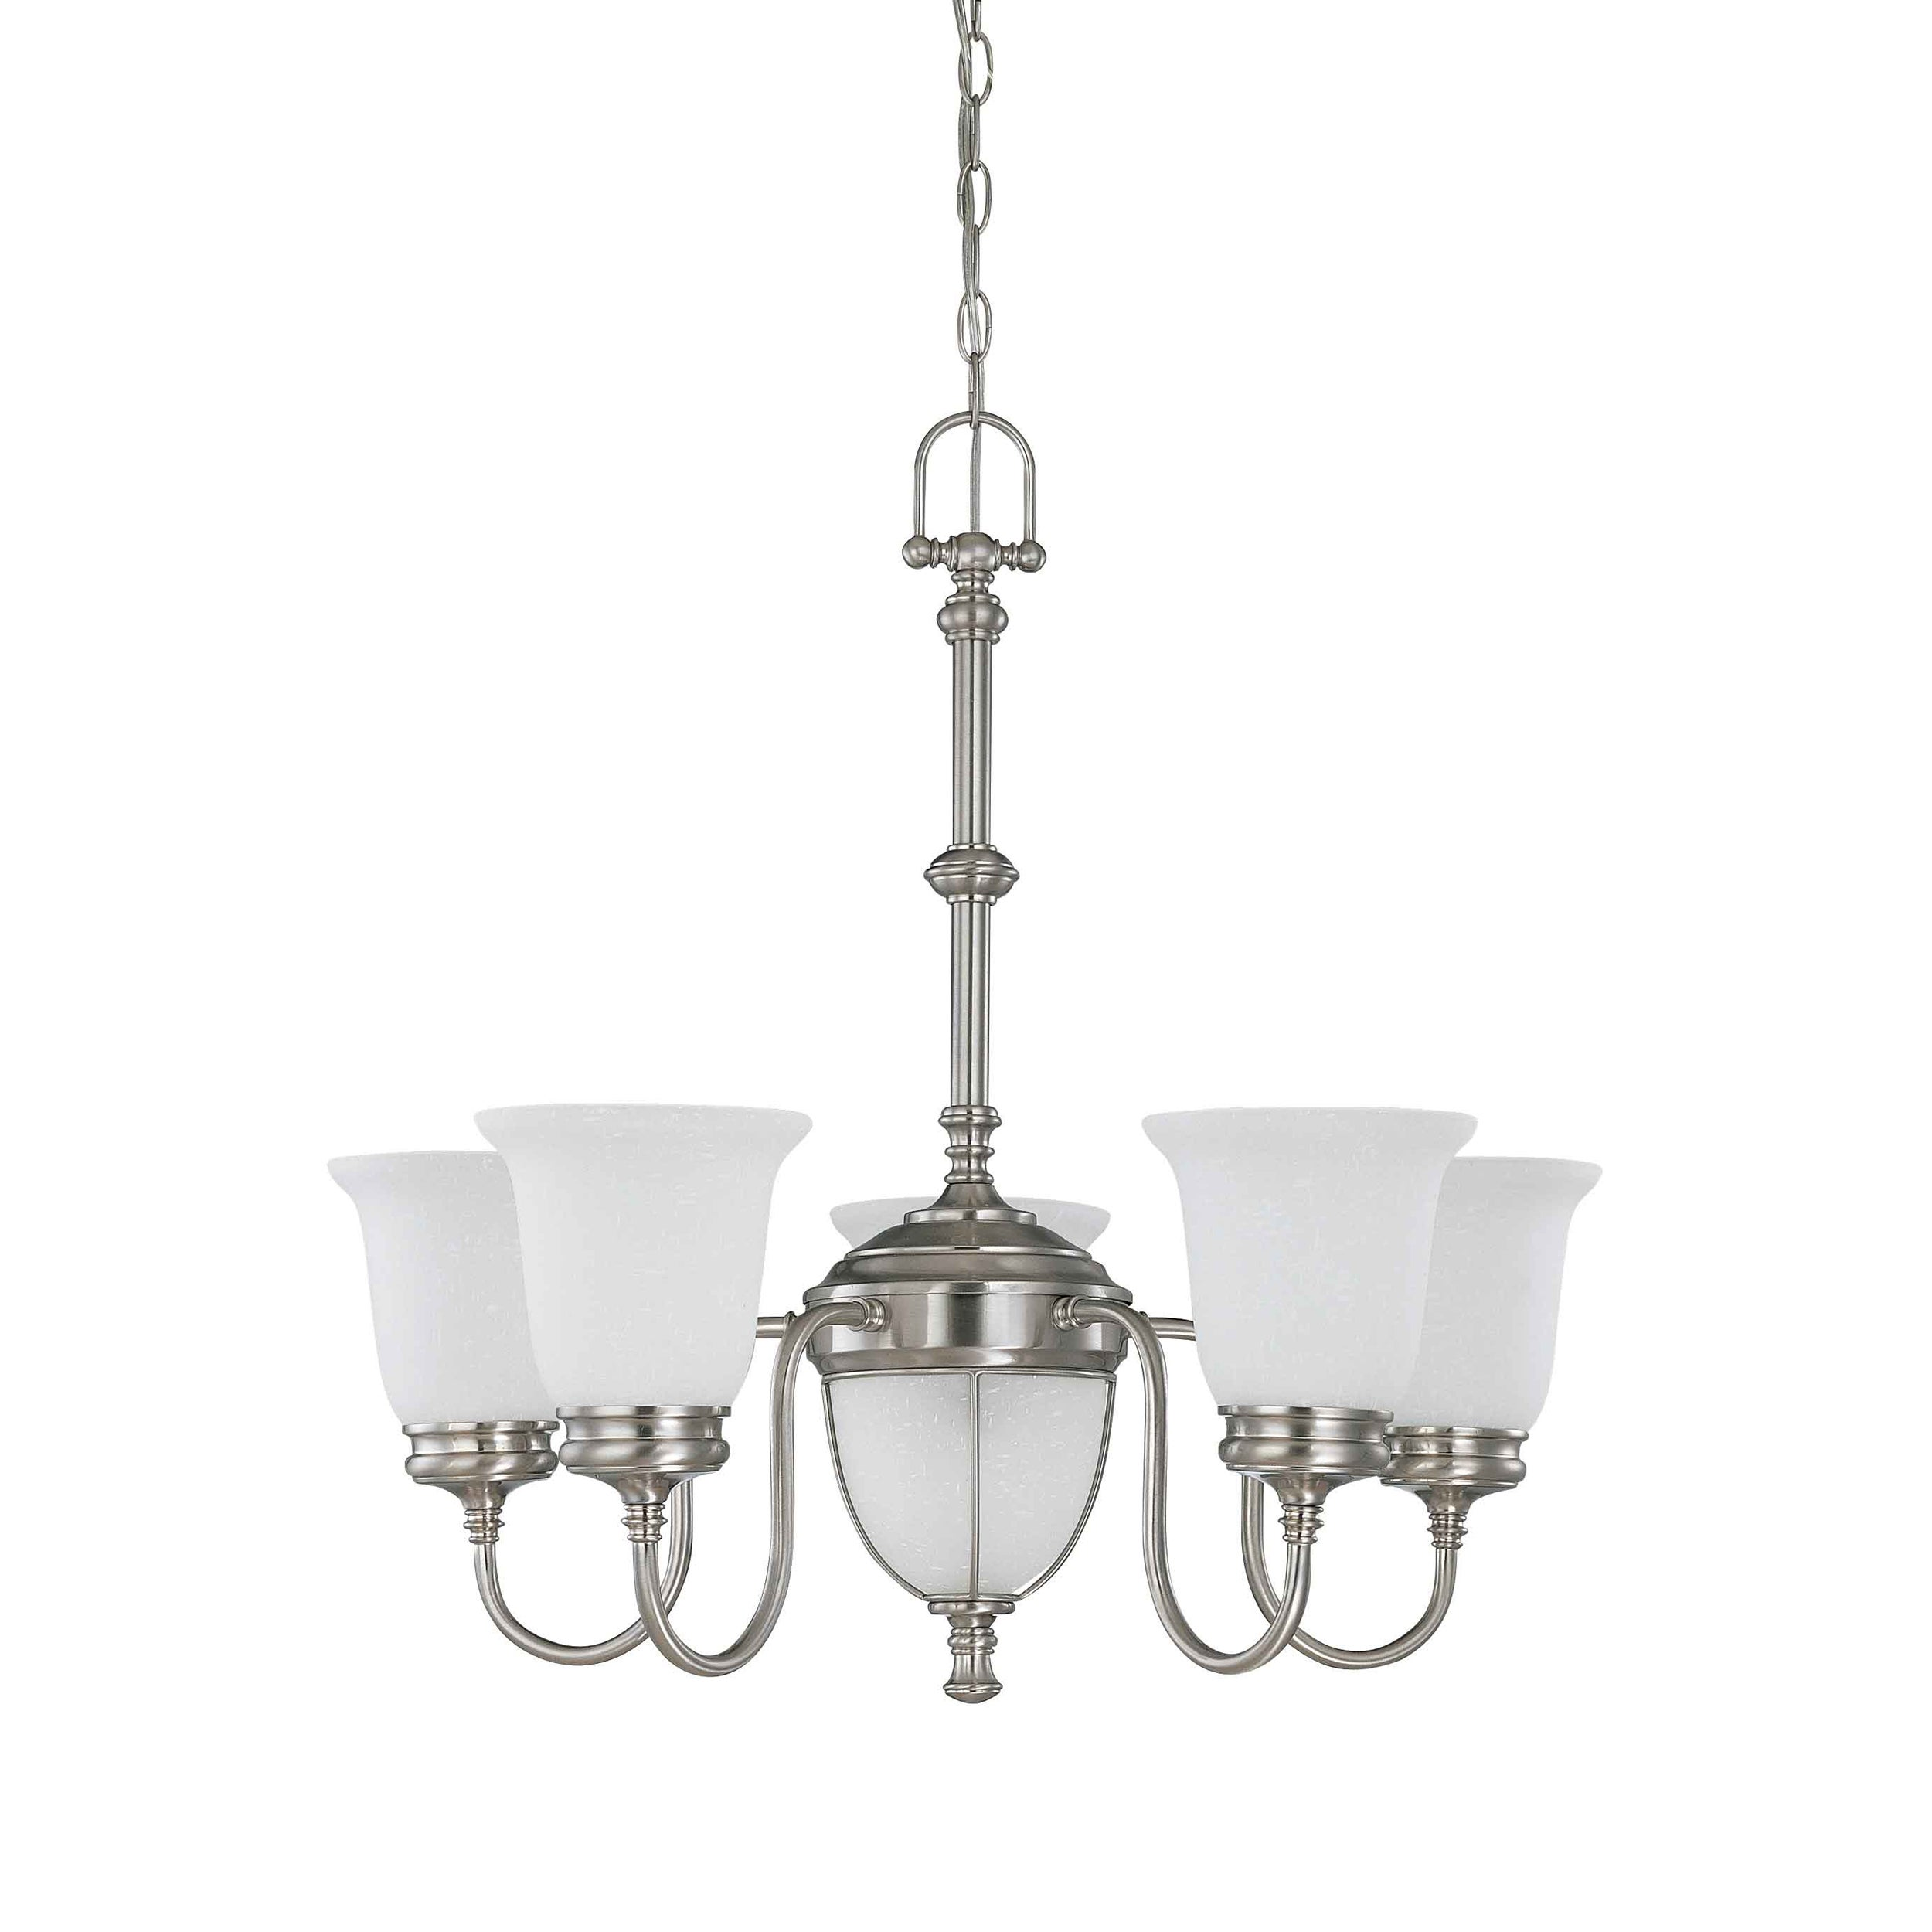 Salem 5 + 2 Light Brushed Nickel With Frosted Linen Glass Chandelier - Thumbnail 0